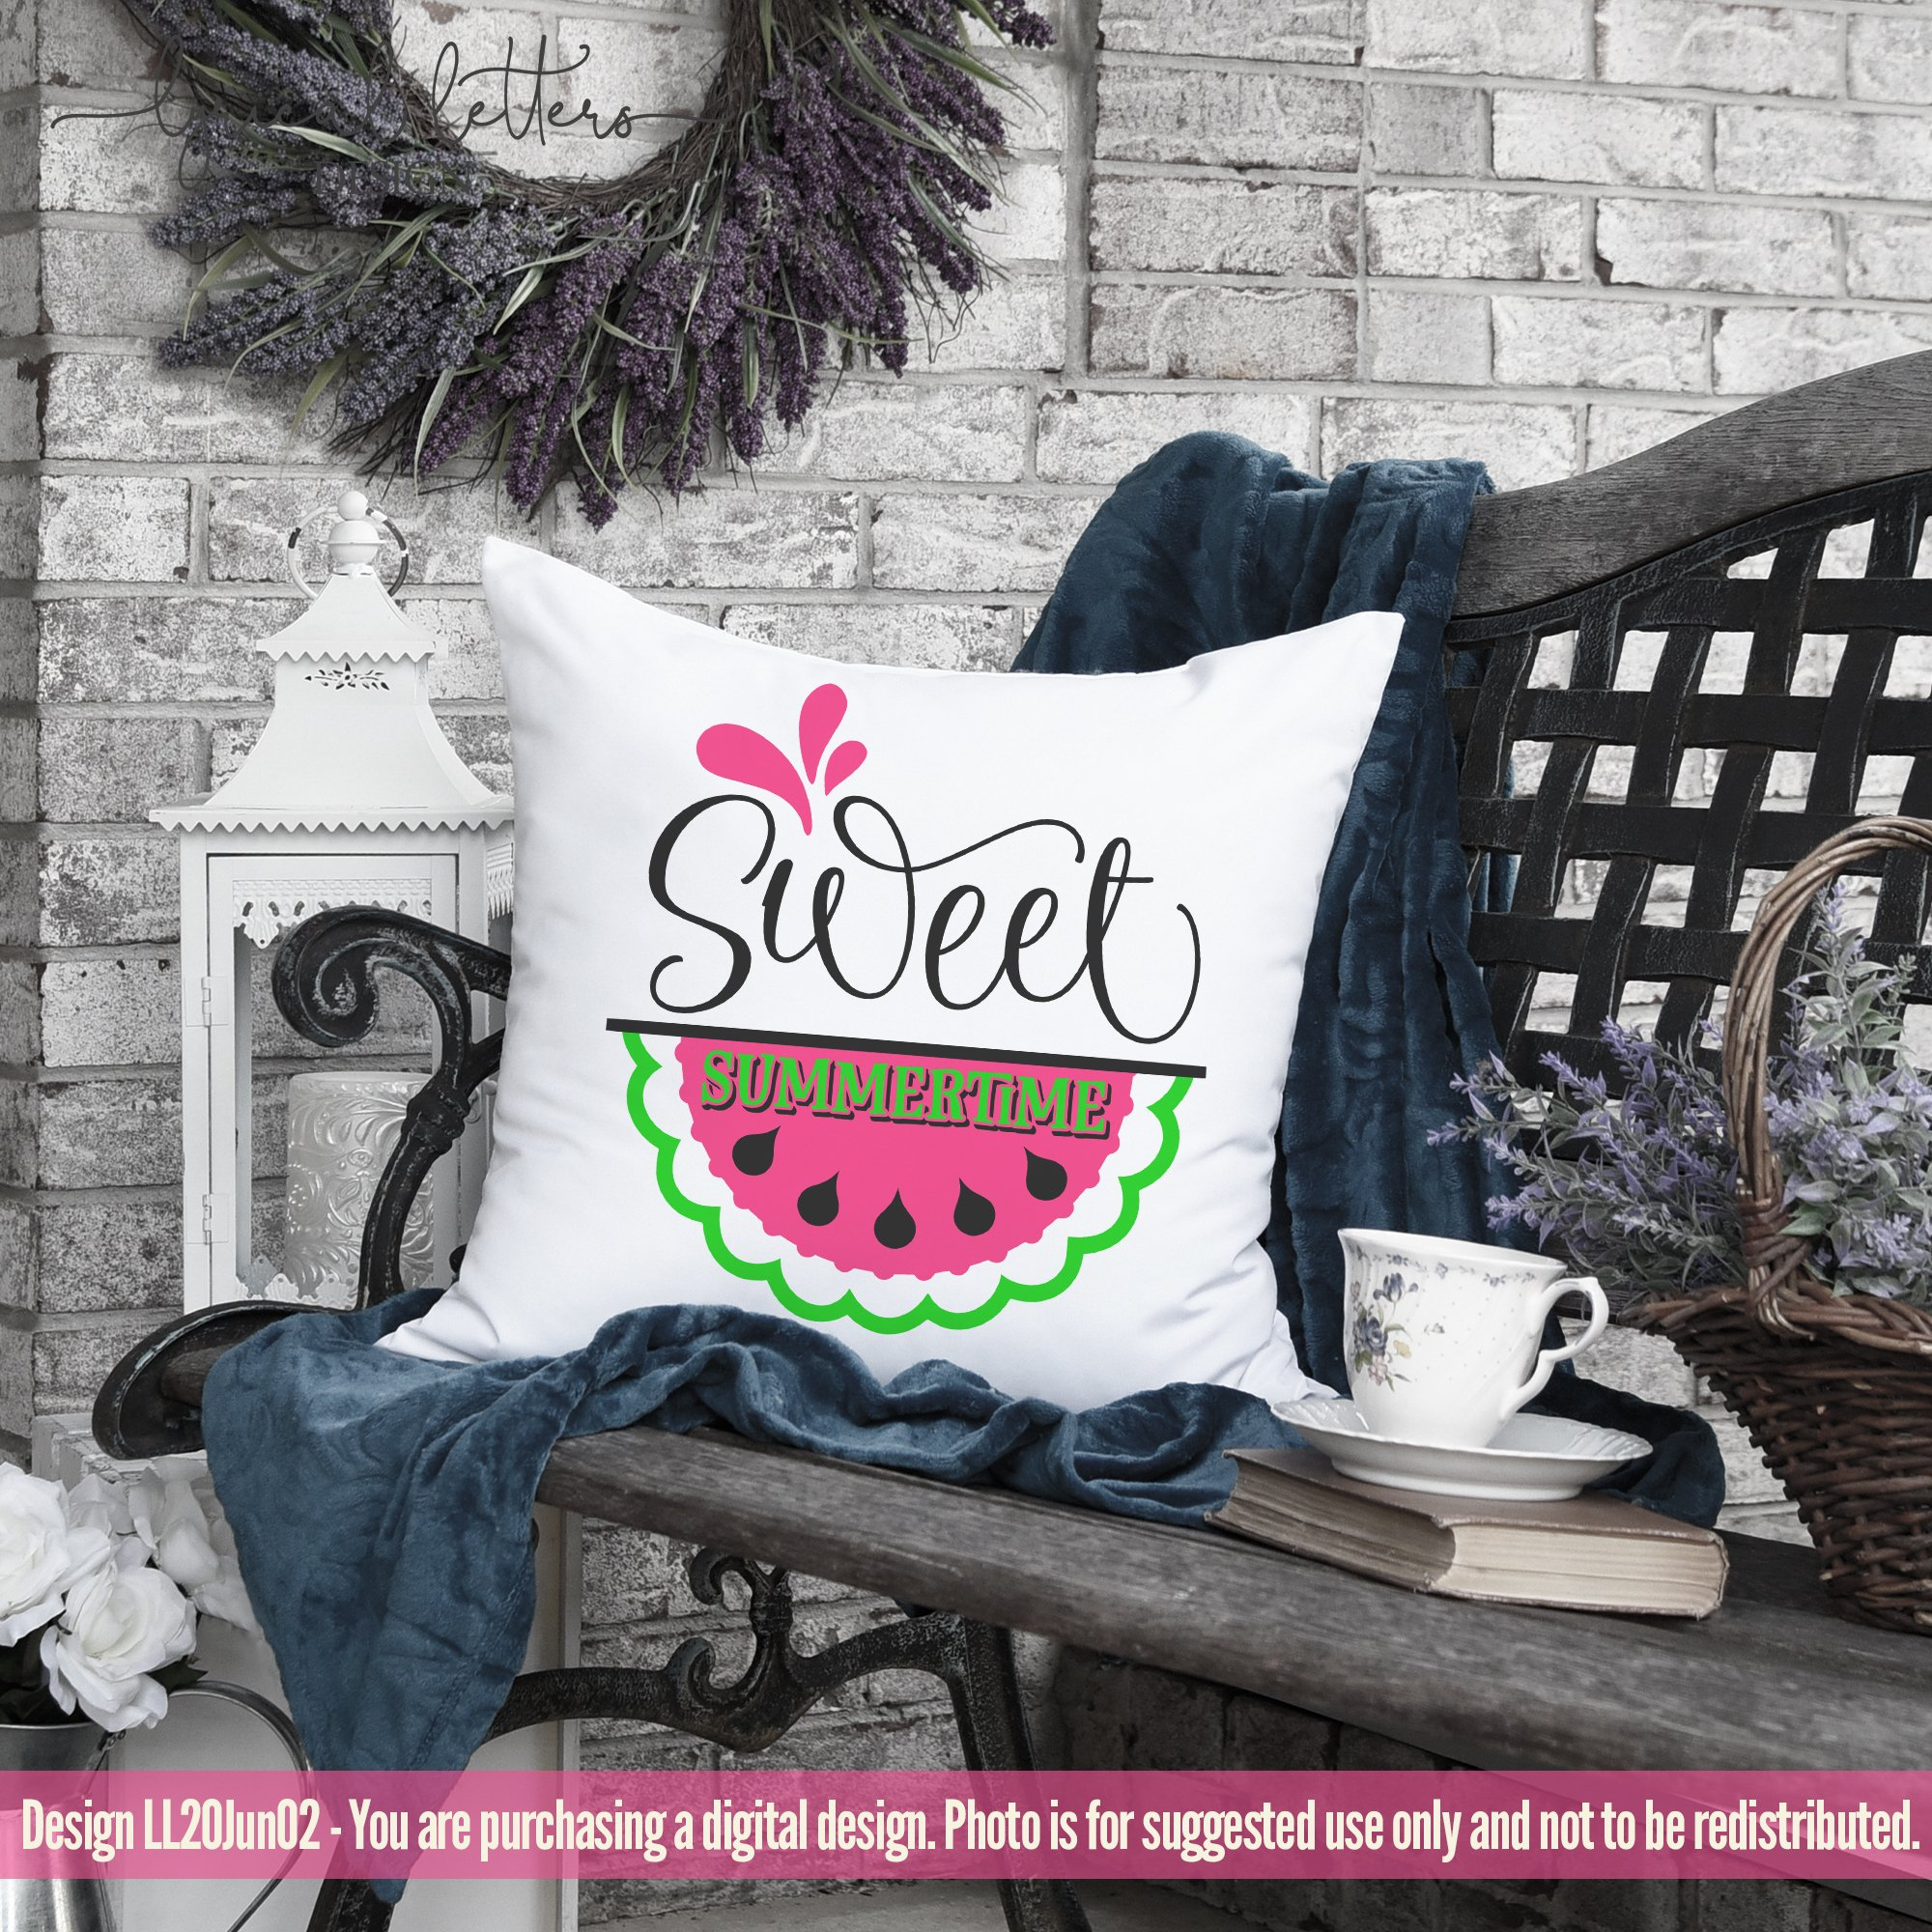 Sweet Summertime Watermelon SVG DXF Cut File LL20Jun02 example image 3